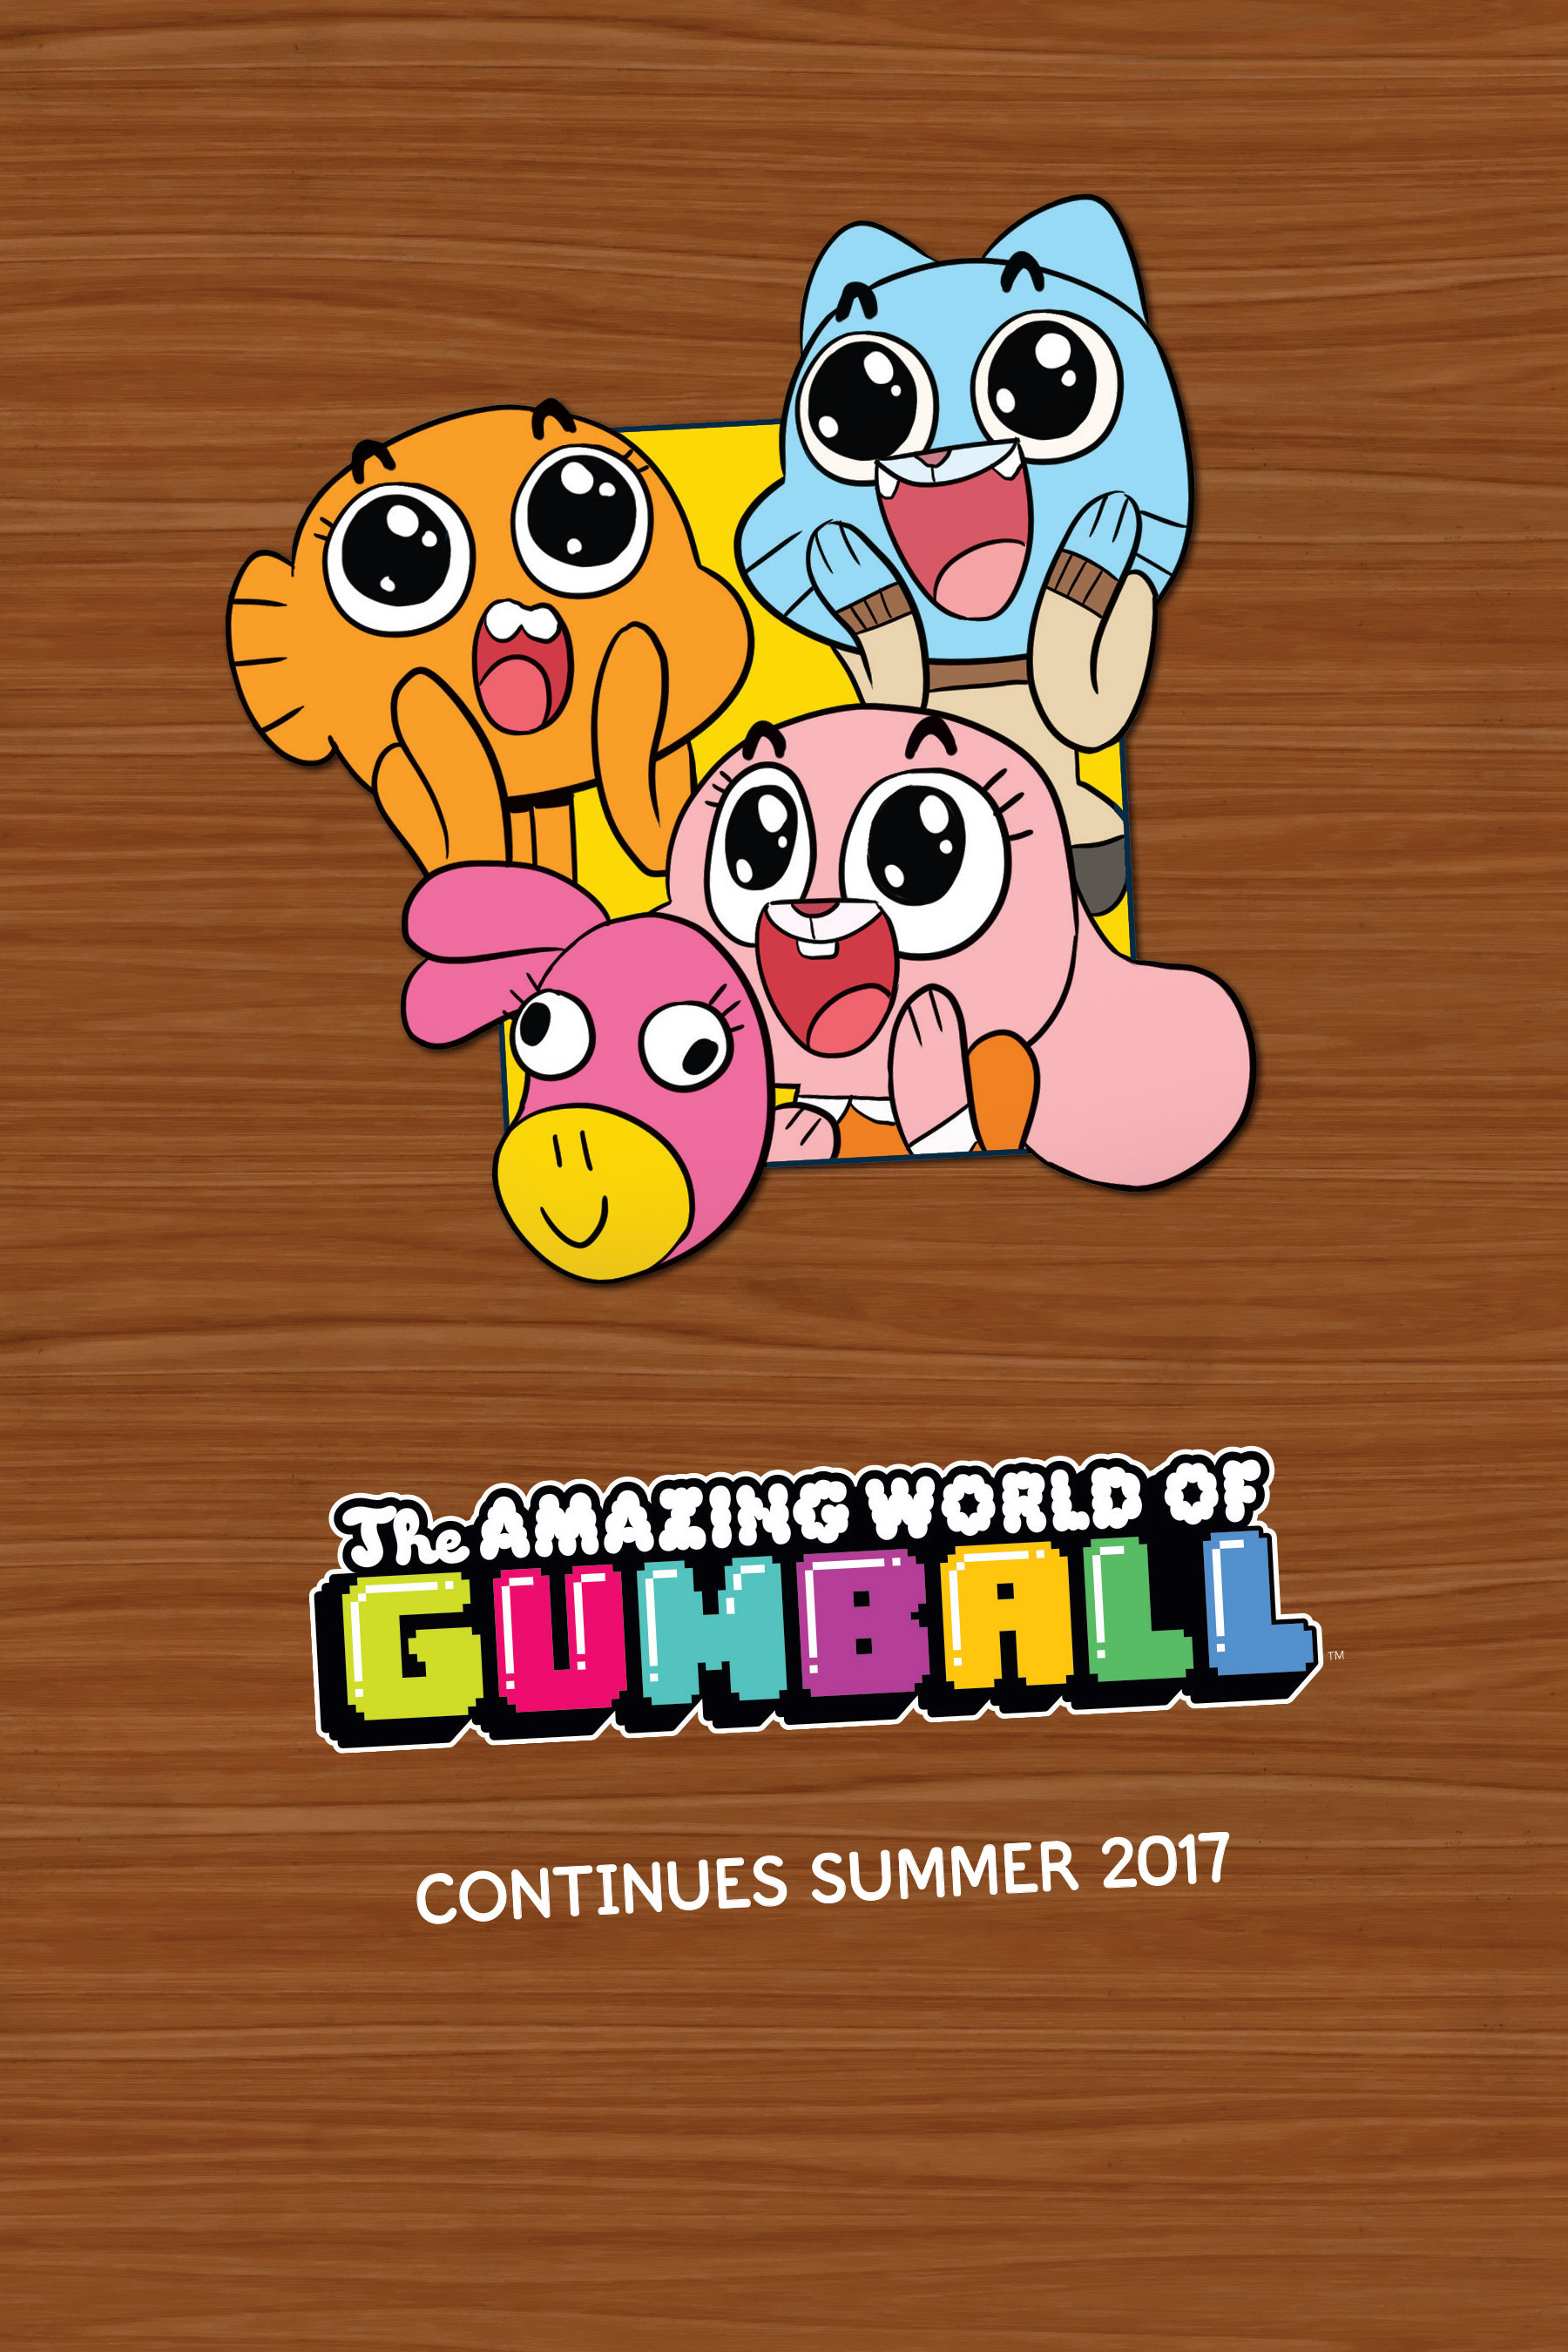 the amazing world of reading نام انیمیشن: the amazing world of gumball season 1-6 - فصل اول الی ششم انیمیشن سریالی دنیای شگفت انگیز گامبال the amazing world of gumball (known also as gumball) is a british-american-irish children's animated television series created by ben bocquelet for cartoon.